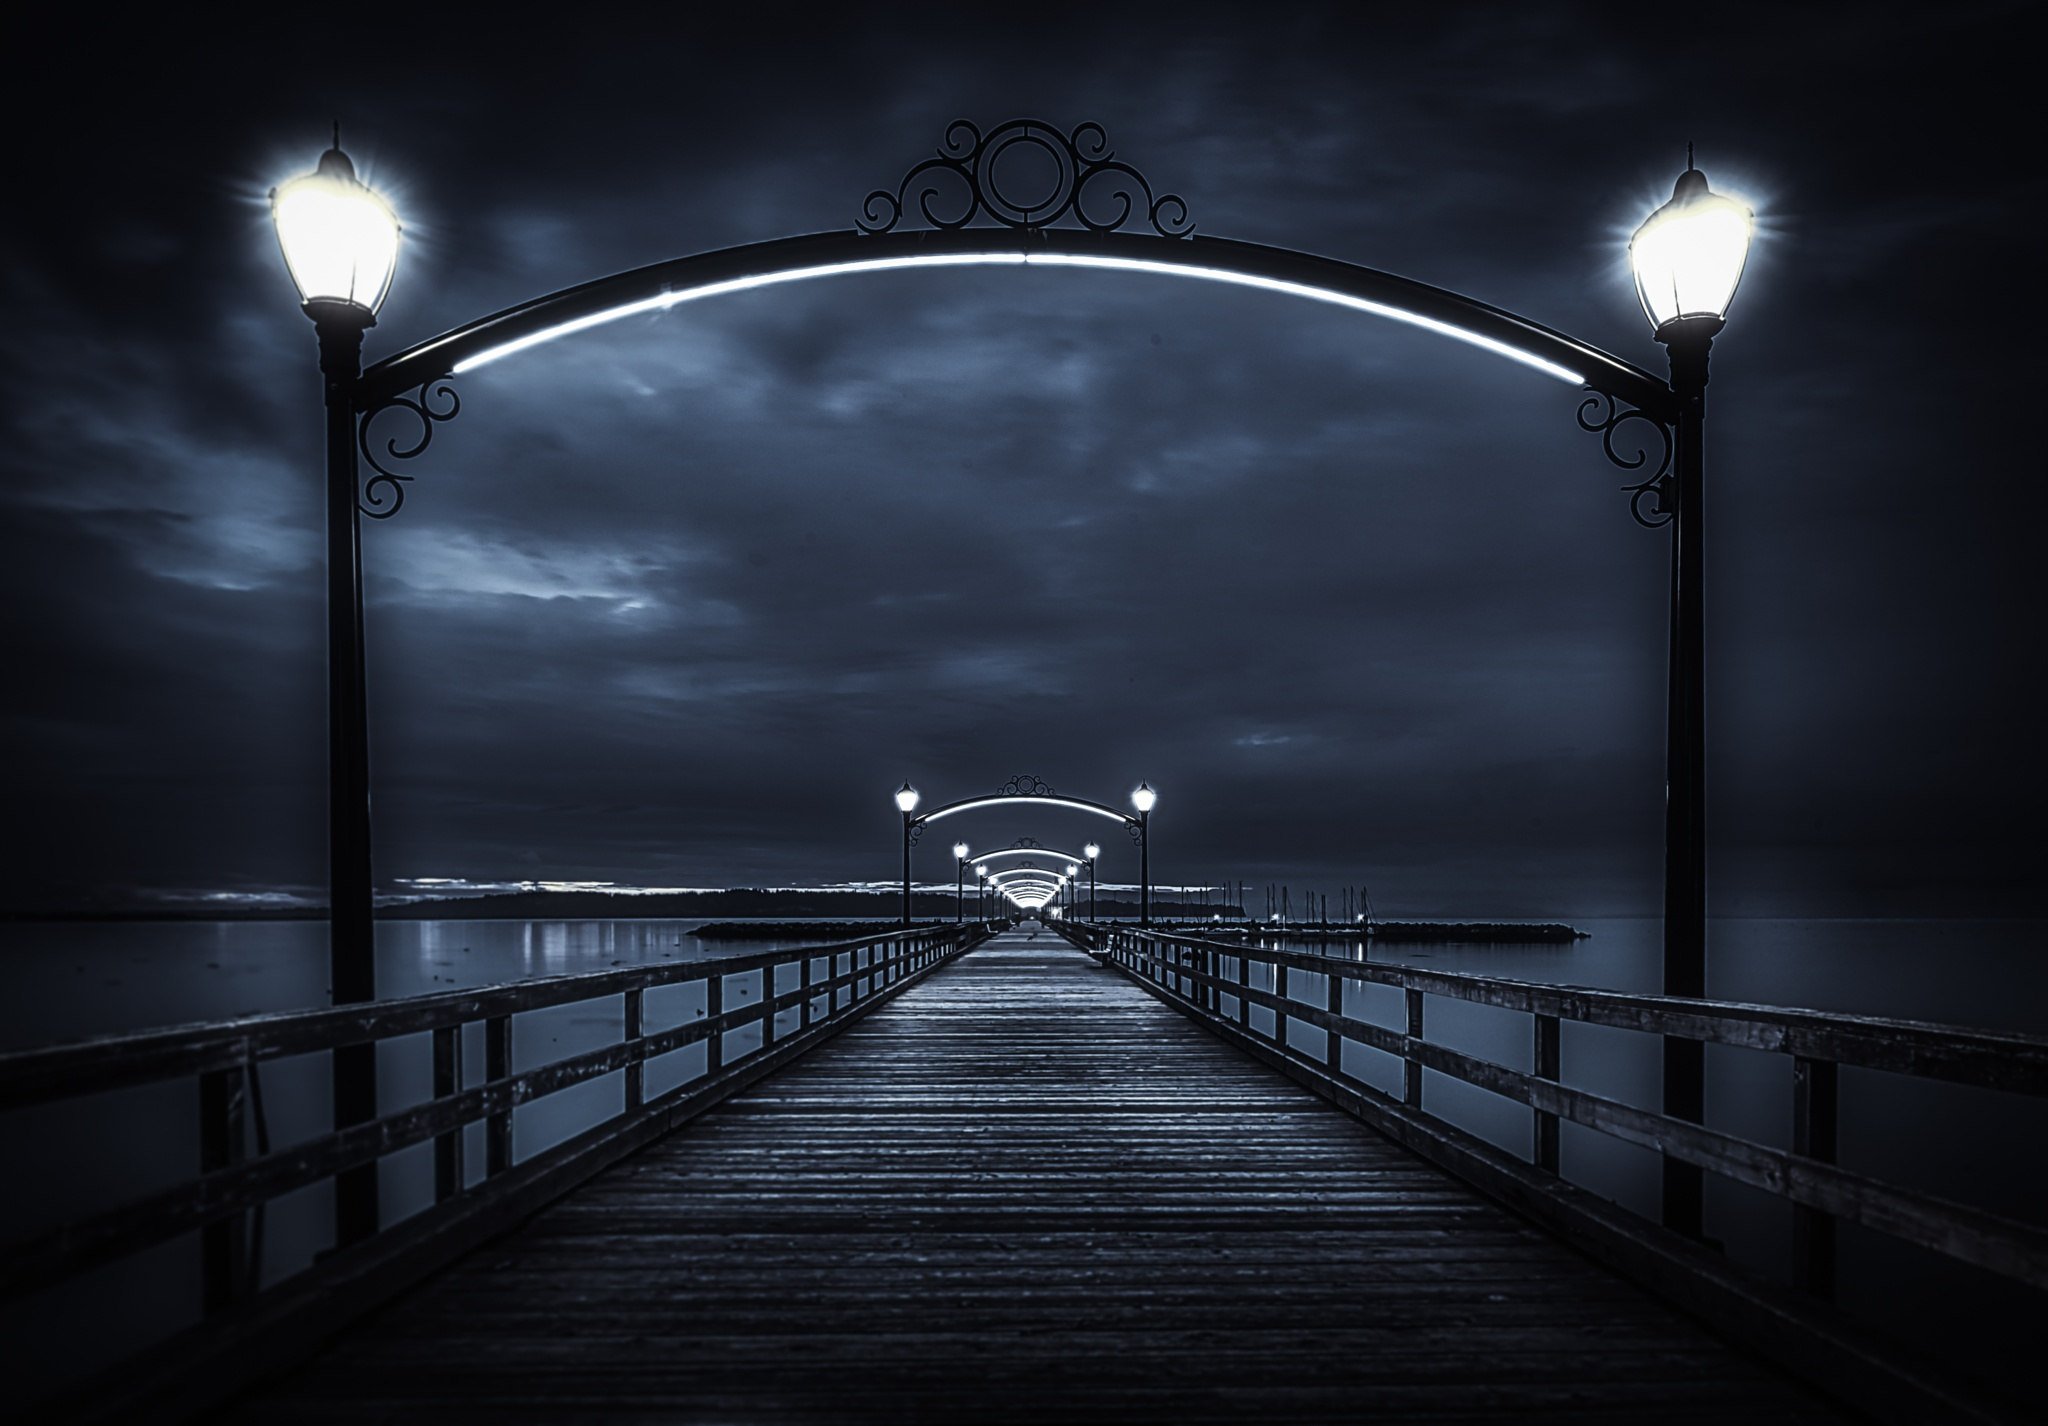 Mystical Pier - B&W by gldosa